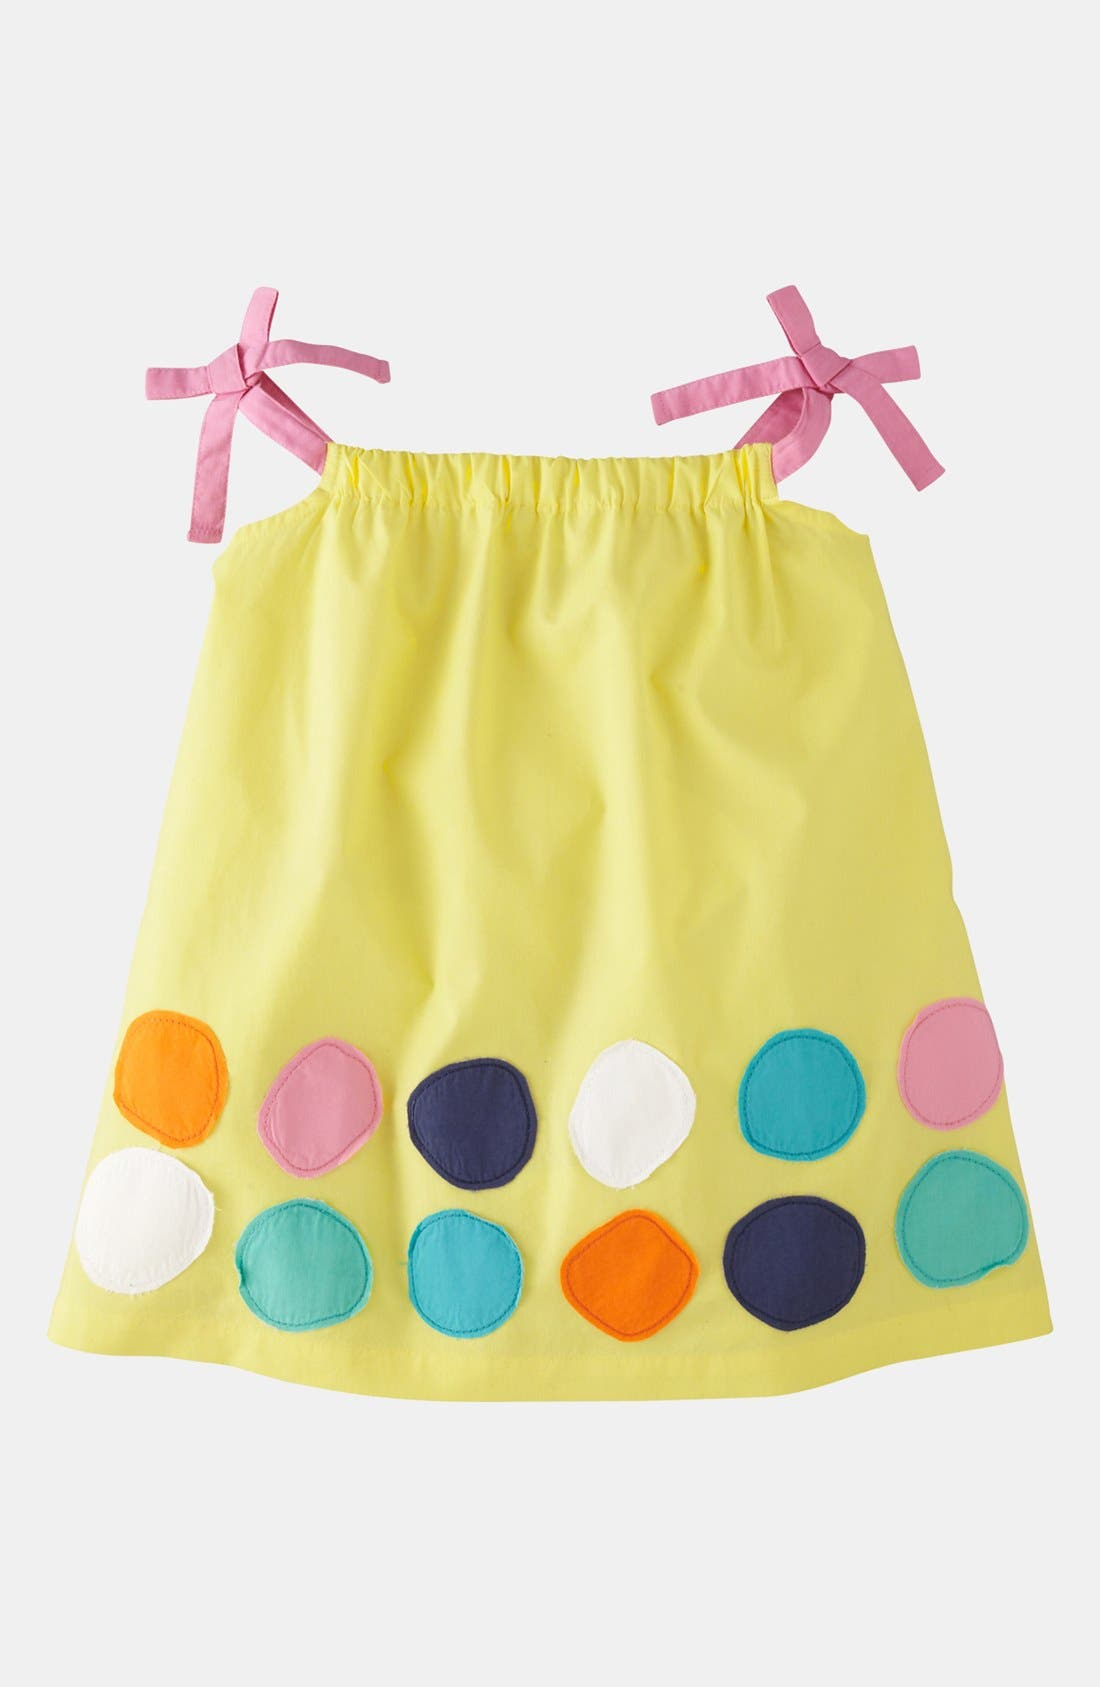 Alternate Image 1 Selected - Mini Boden 'Appliqué - Color Pop' Top (Toddler)